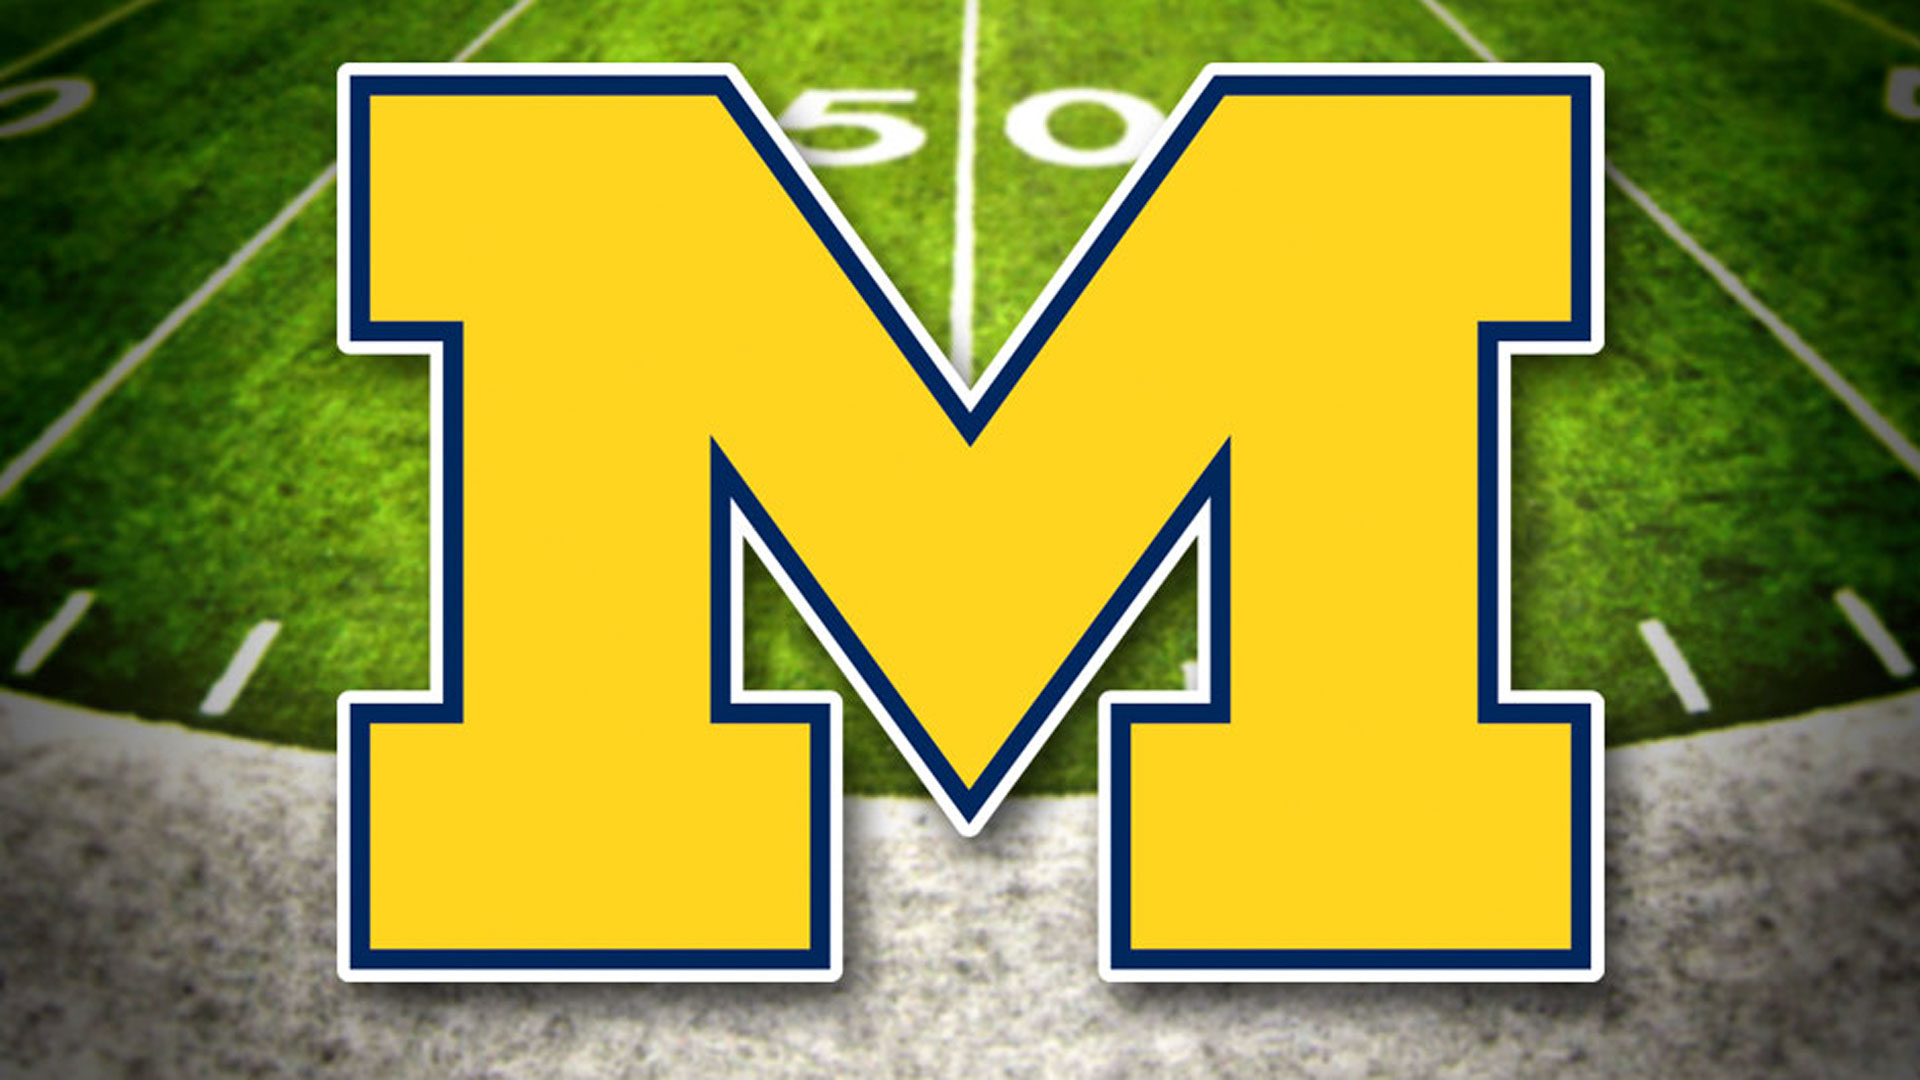 Top-10-michigan-wolverines-of-all-time_1xkmnwqnsm3gr1ieufuj47gswv